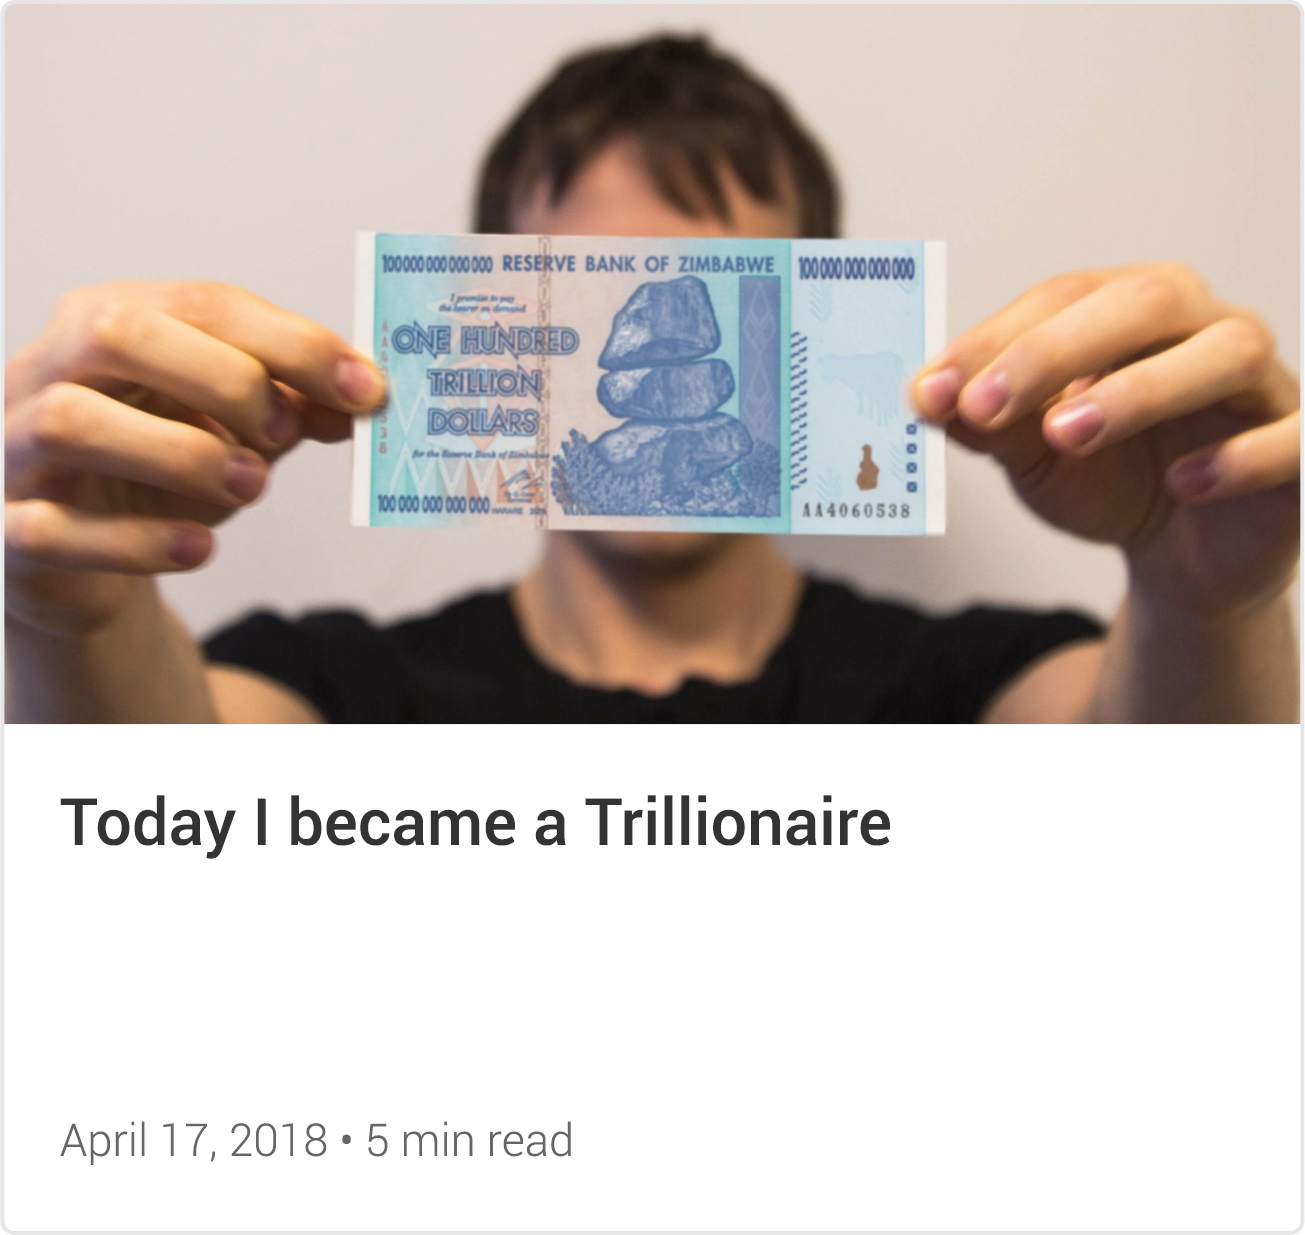 read-today-i-became-a-trillionaire